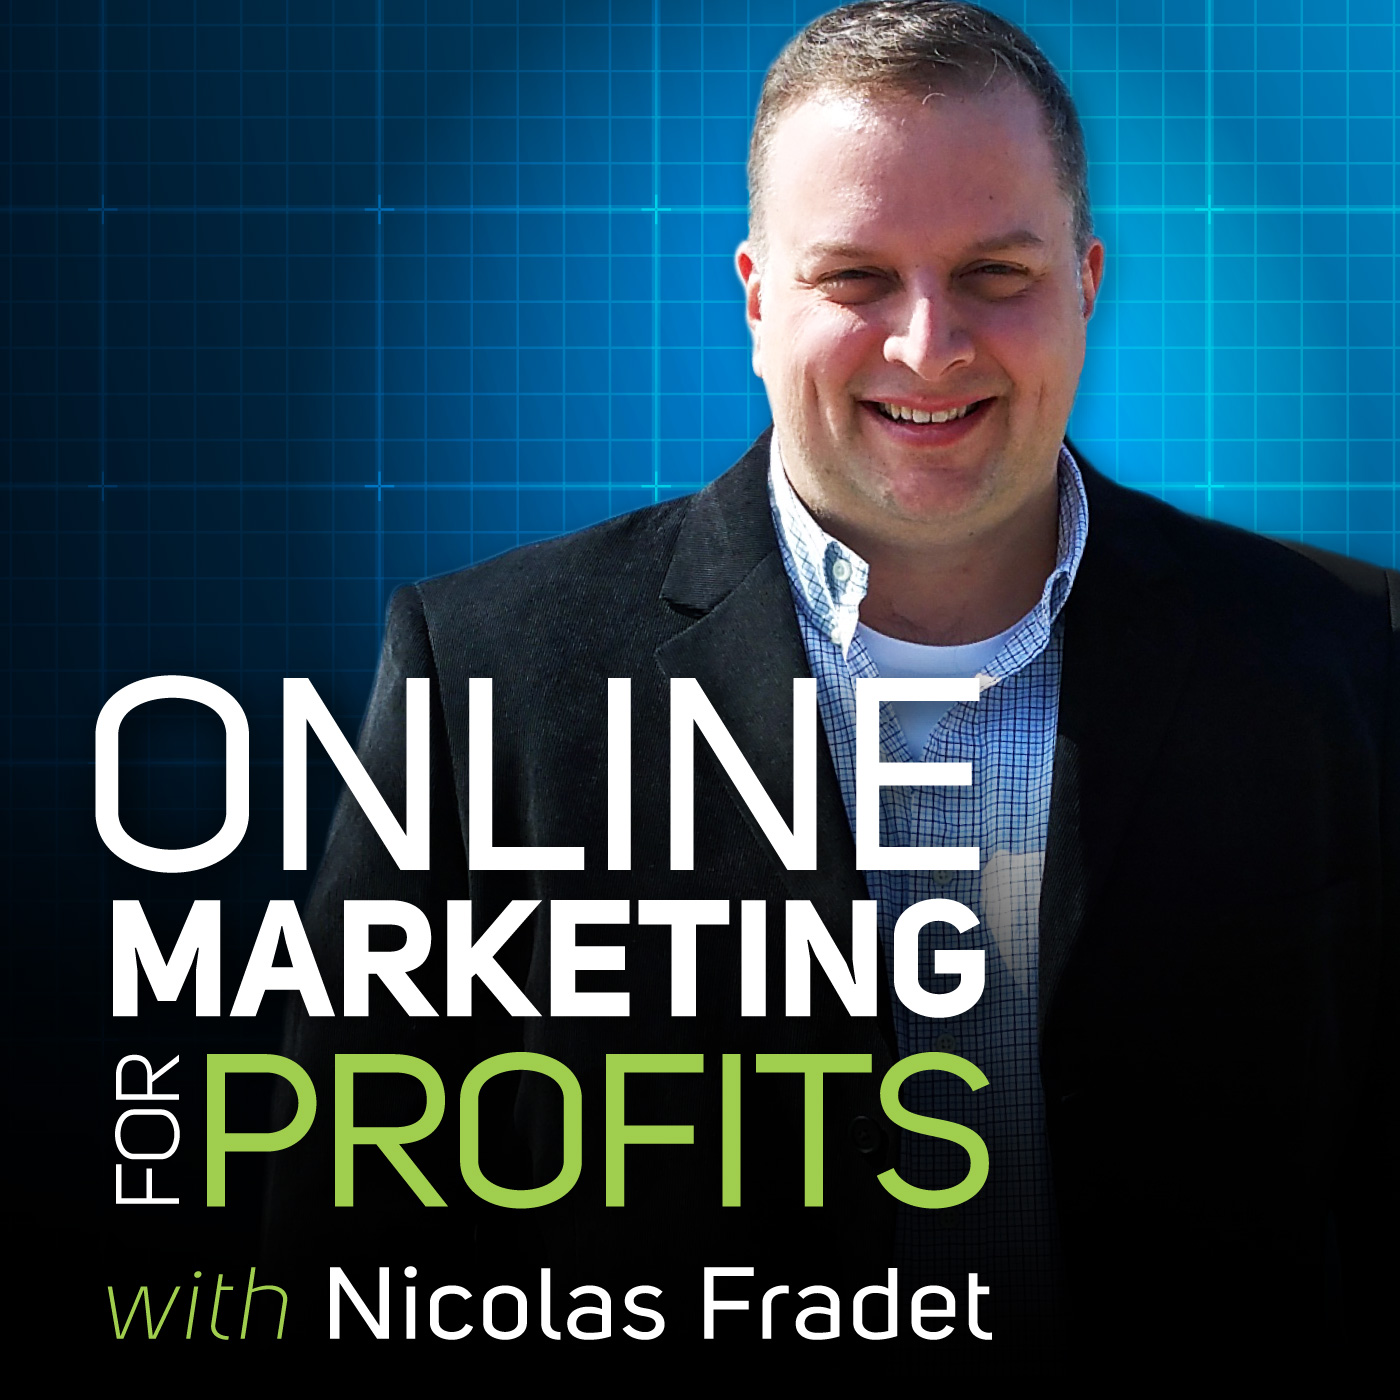 Online Marketing for Profits